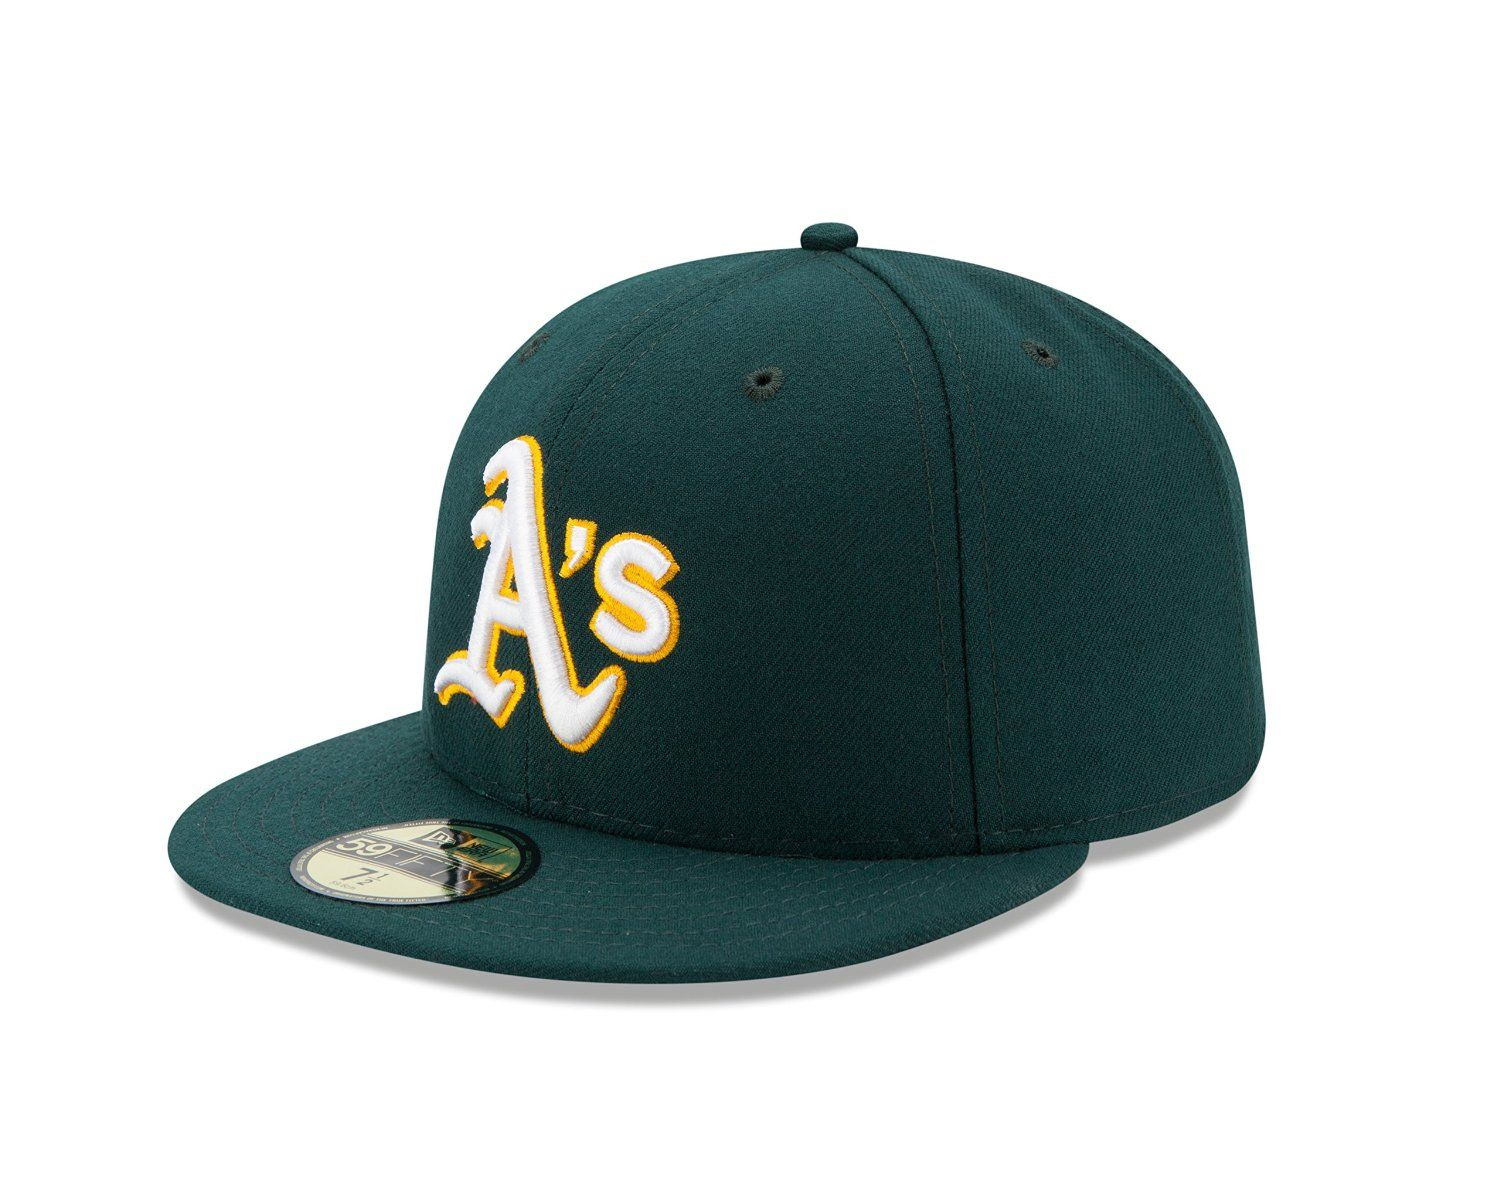 MLB Oakland Athletics Alt AC On Field 59Fifty Baseball Cap Azul 7 5 8   Amazon.com.mx  Deportes y Aire Libre ae44c5ef507